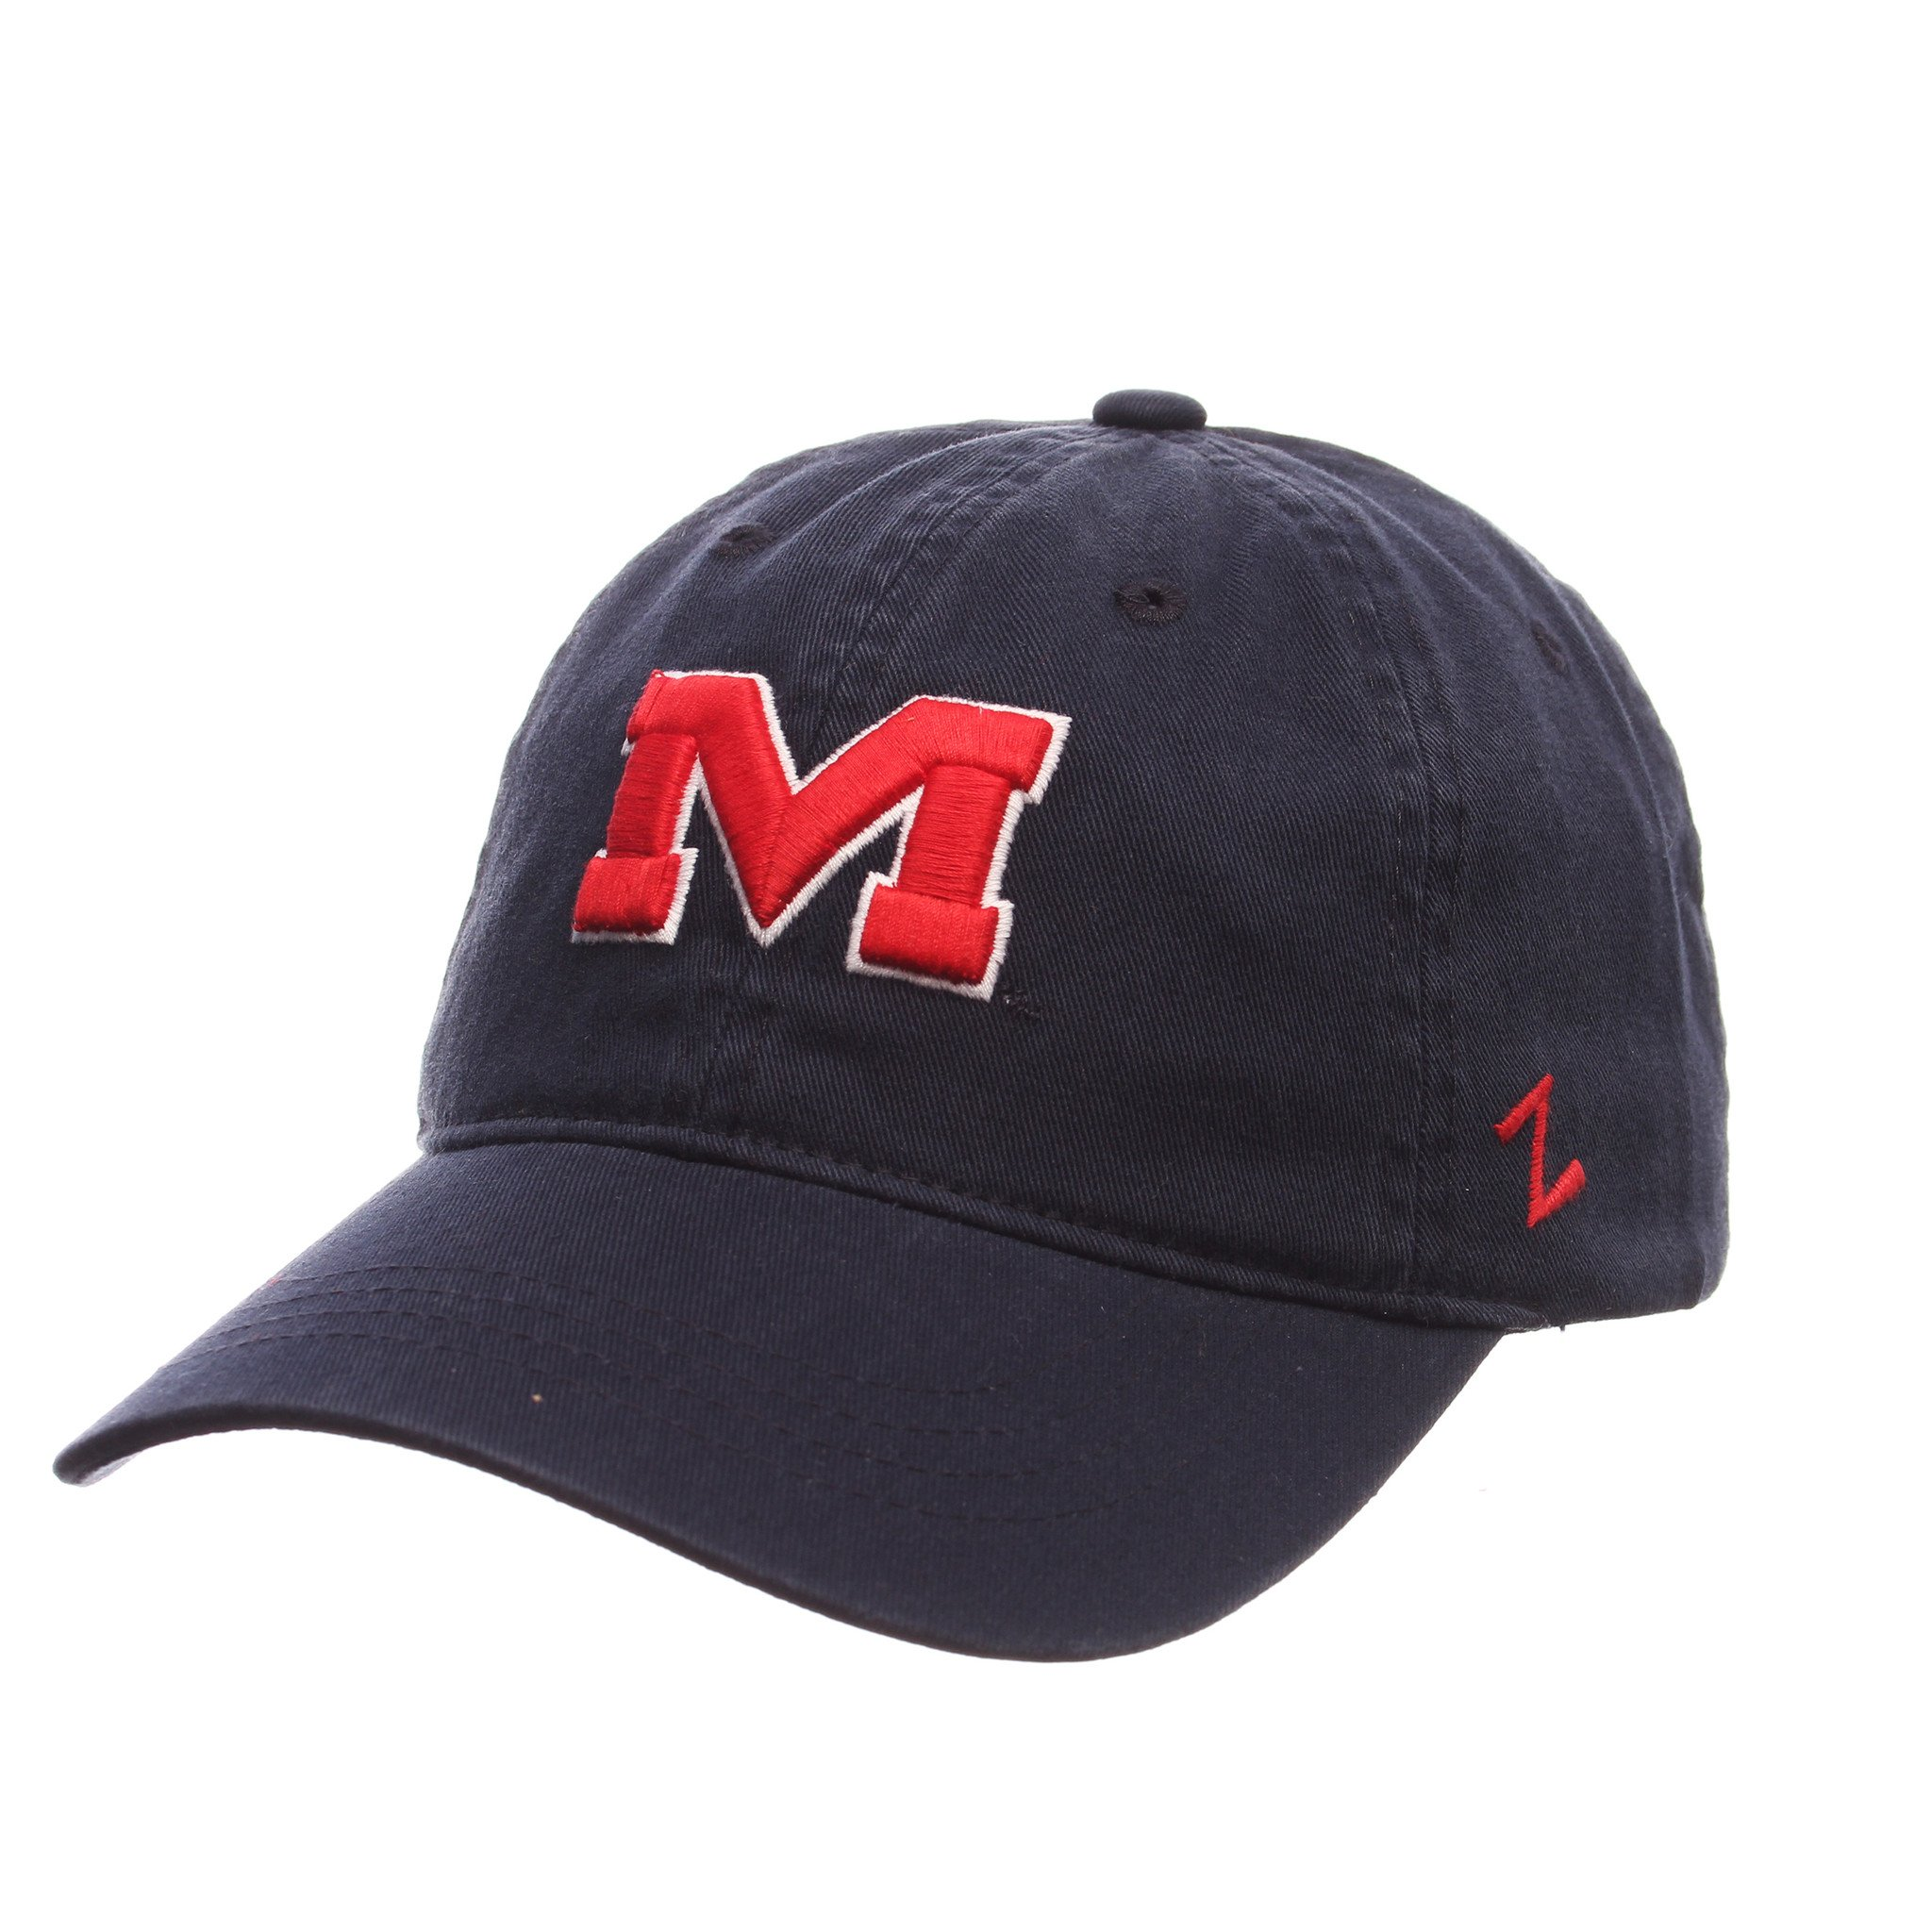 Scholarship M Hat - Navy Wash